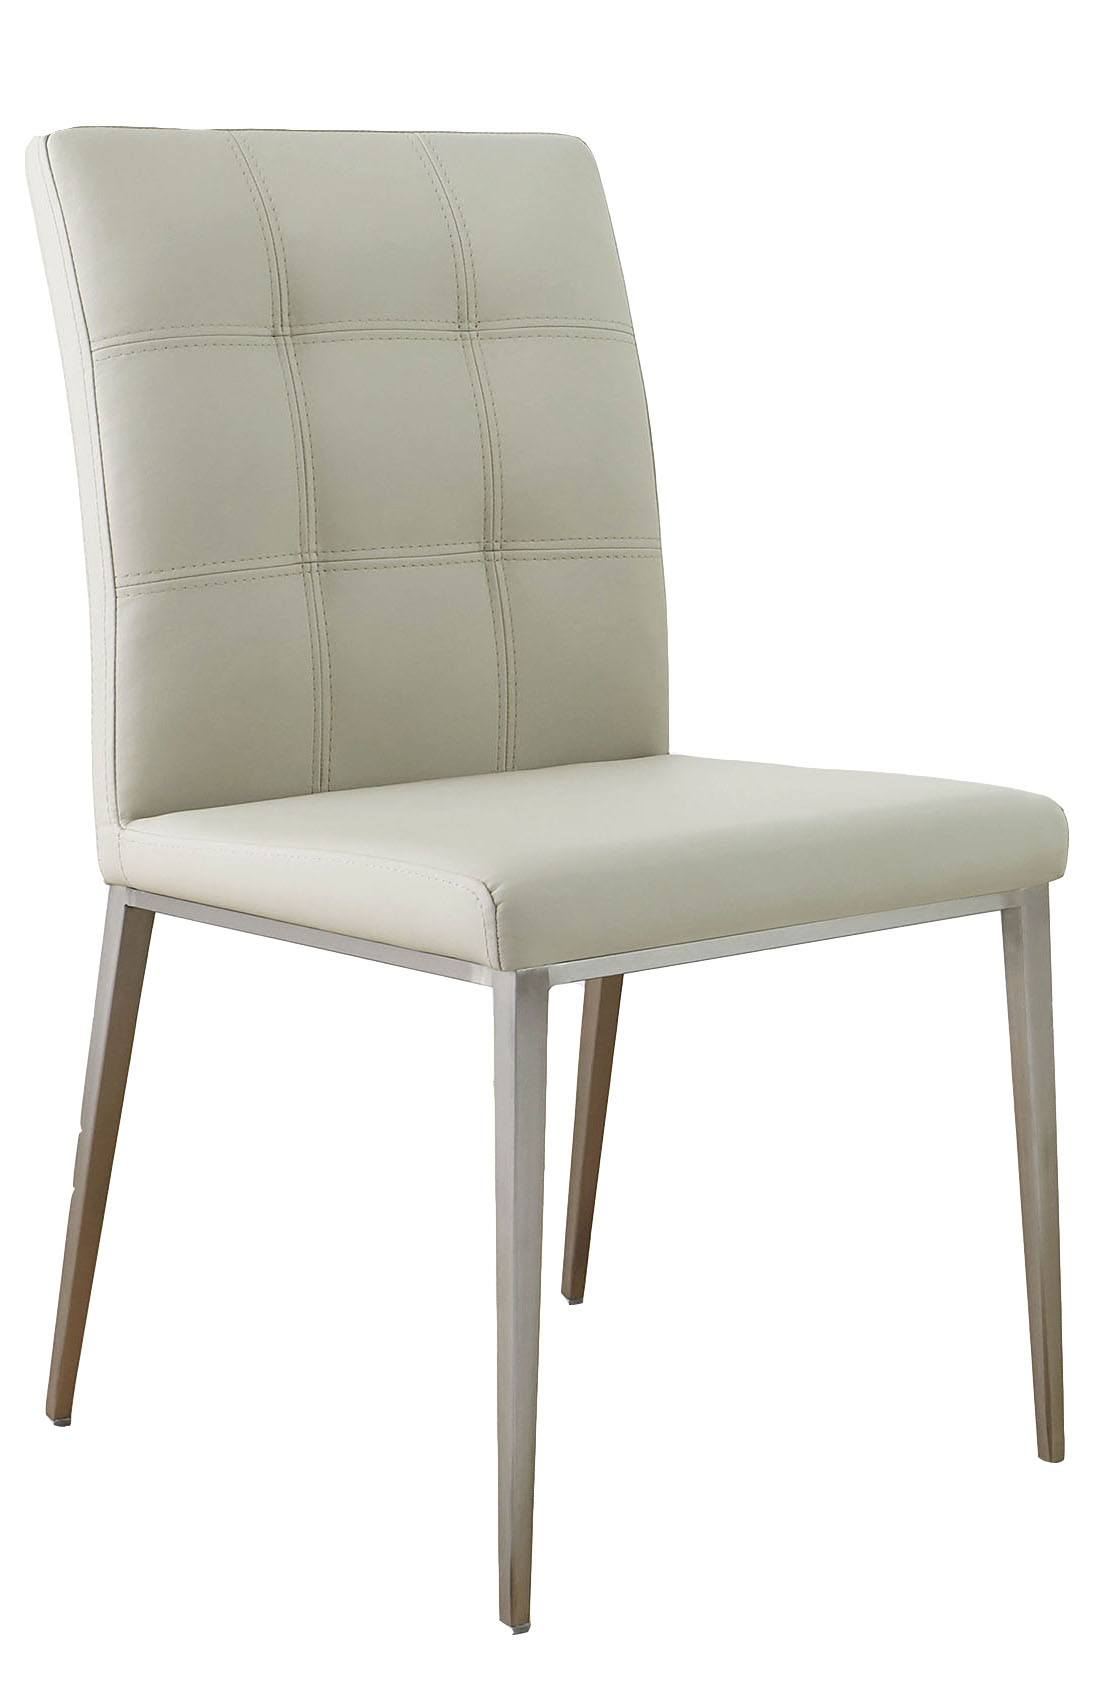 Moda Dining Chair in Oatmeal